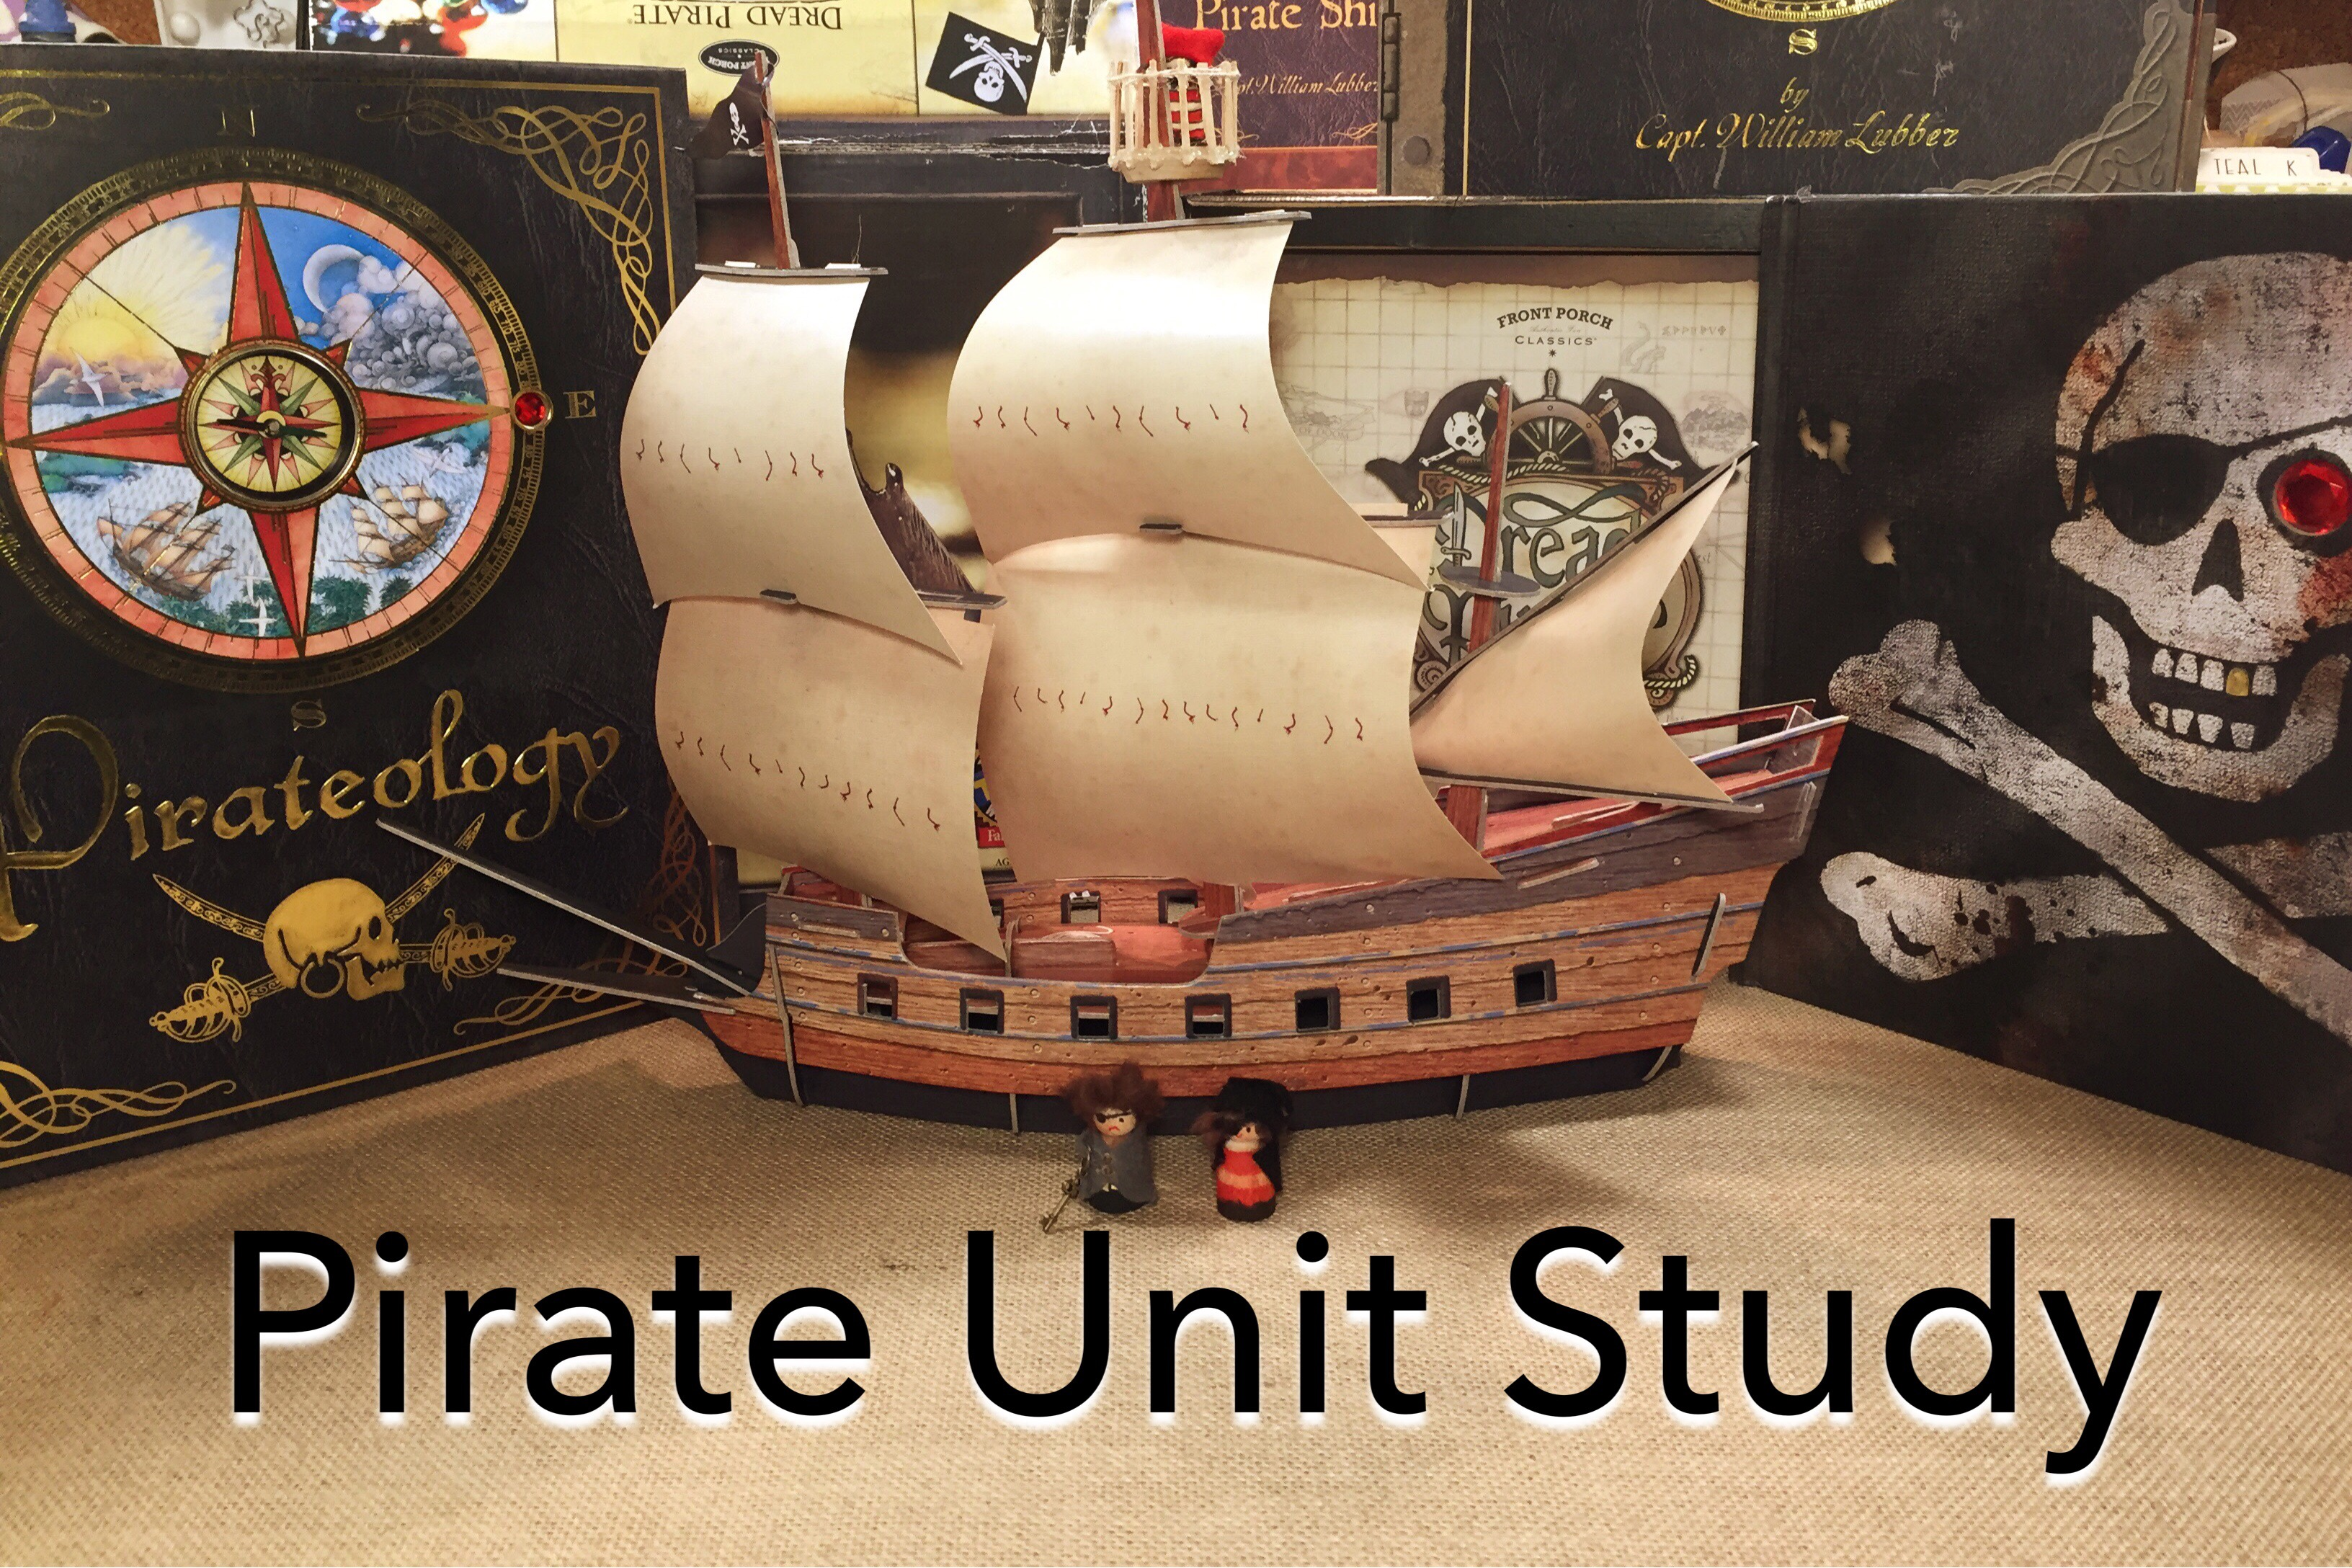 Pirate Unit Study